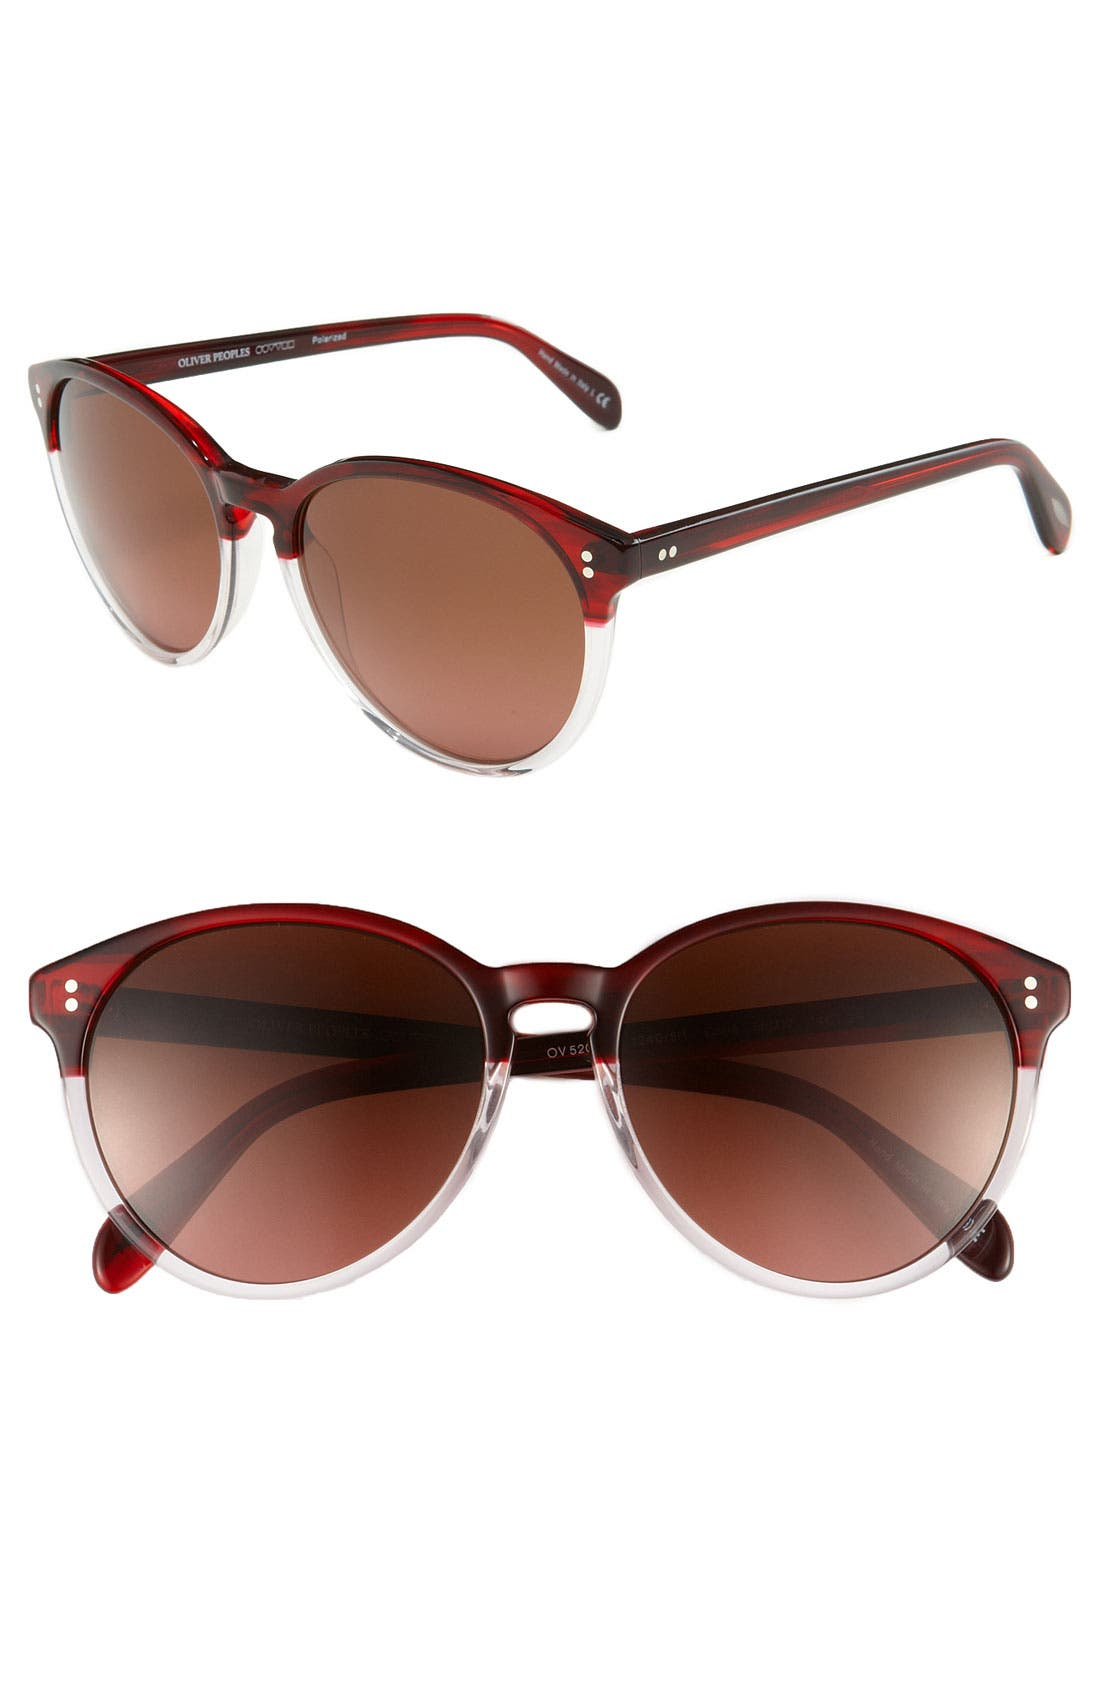 Main Image - Oliver Peoples 56mm Sunglasses